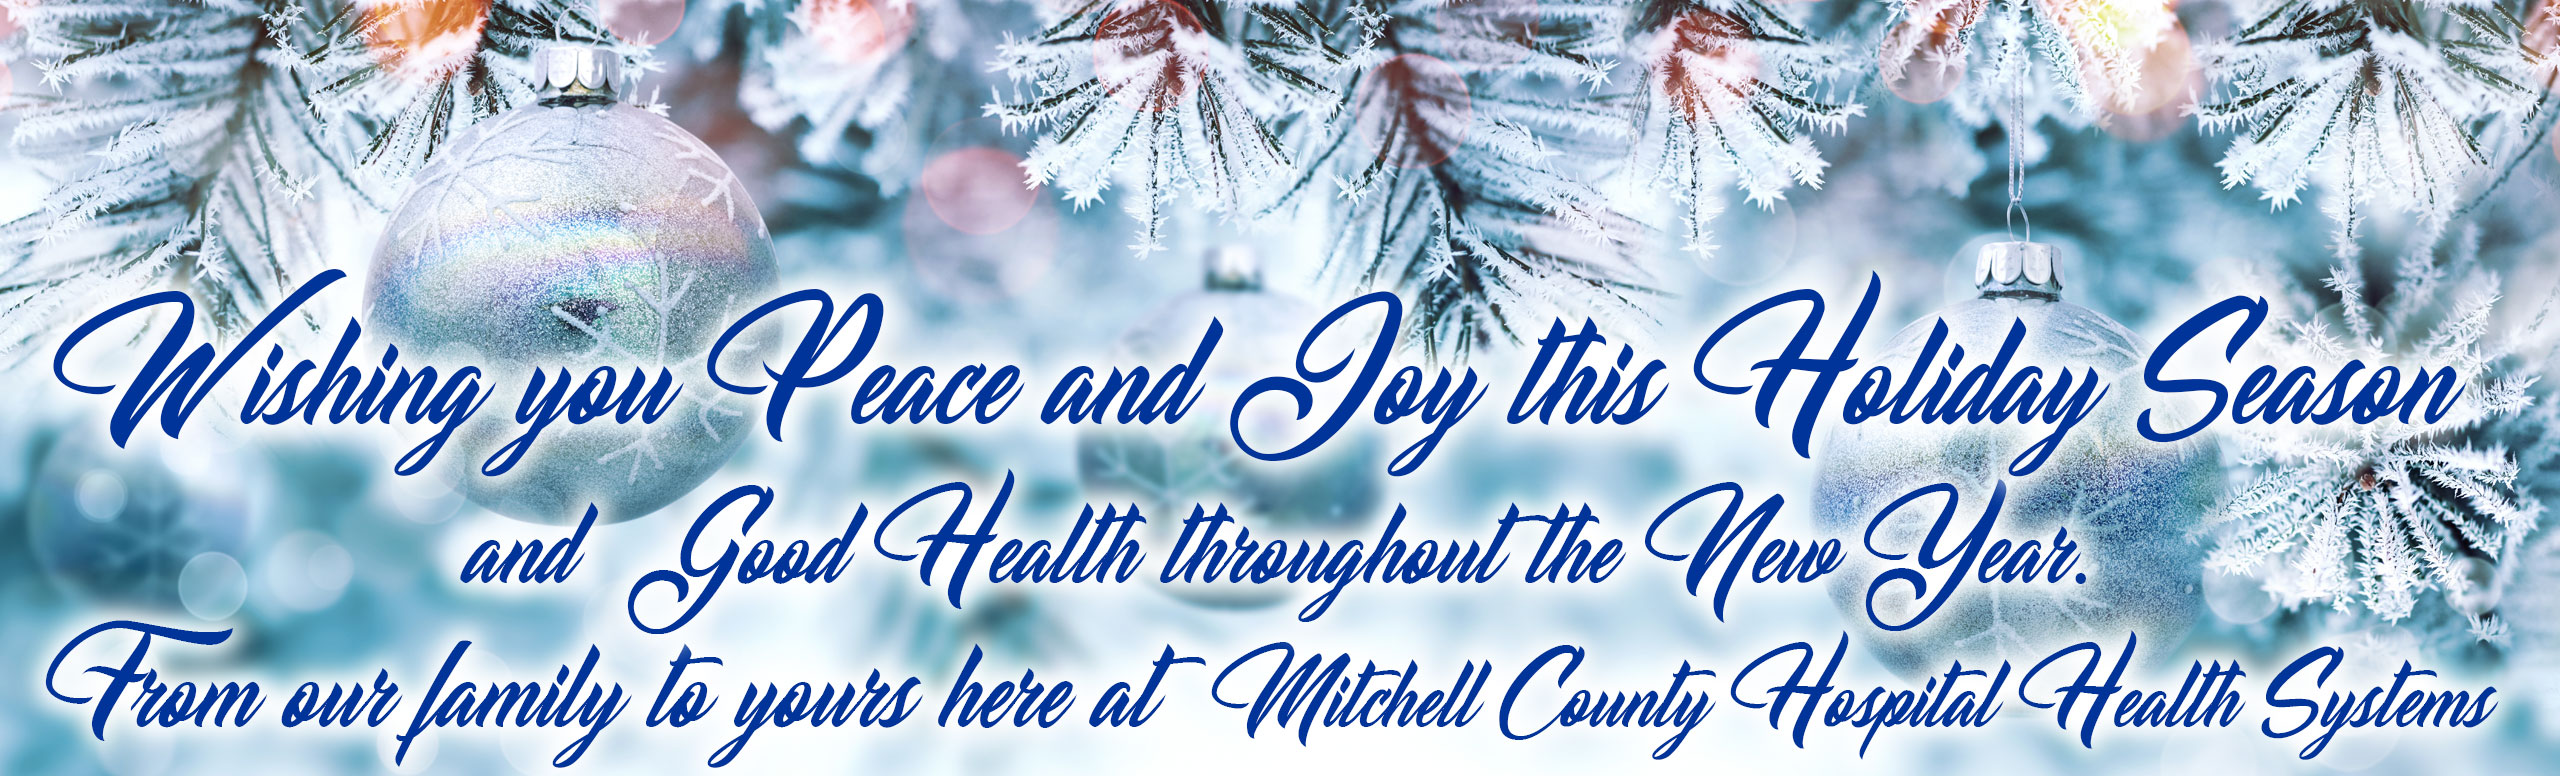 Wishing you Peace and Joy this Holiday Season and Health throughout the New Year from our family to yours here at Mitchell County Hospital Health Systems